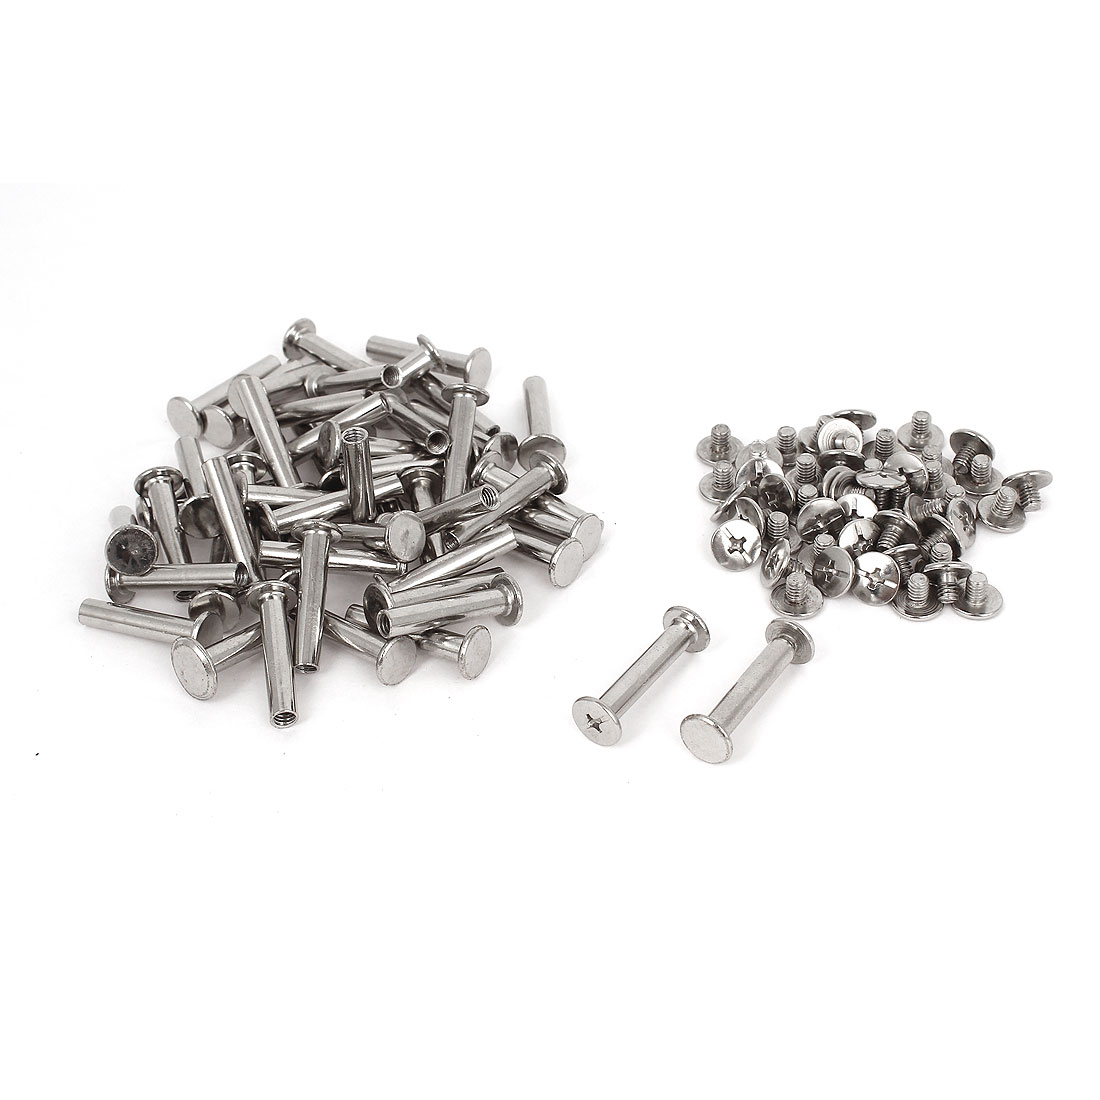 5mmx25mm Nickel Plated Binding Screw Post 50pcs for Scrapbook Photo Albums